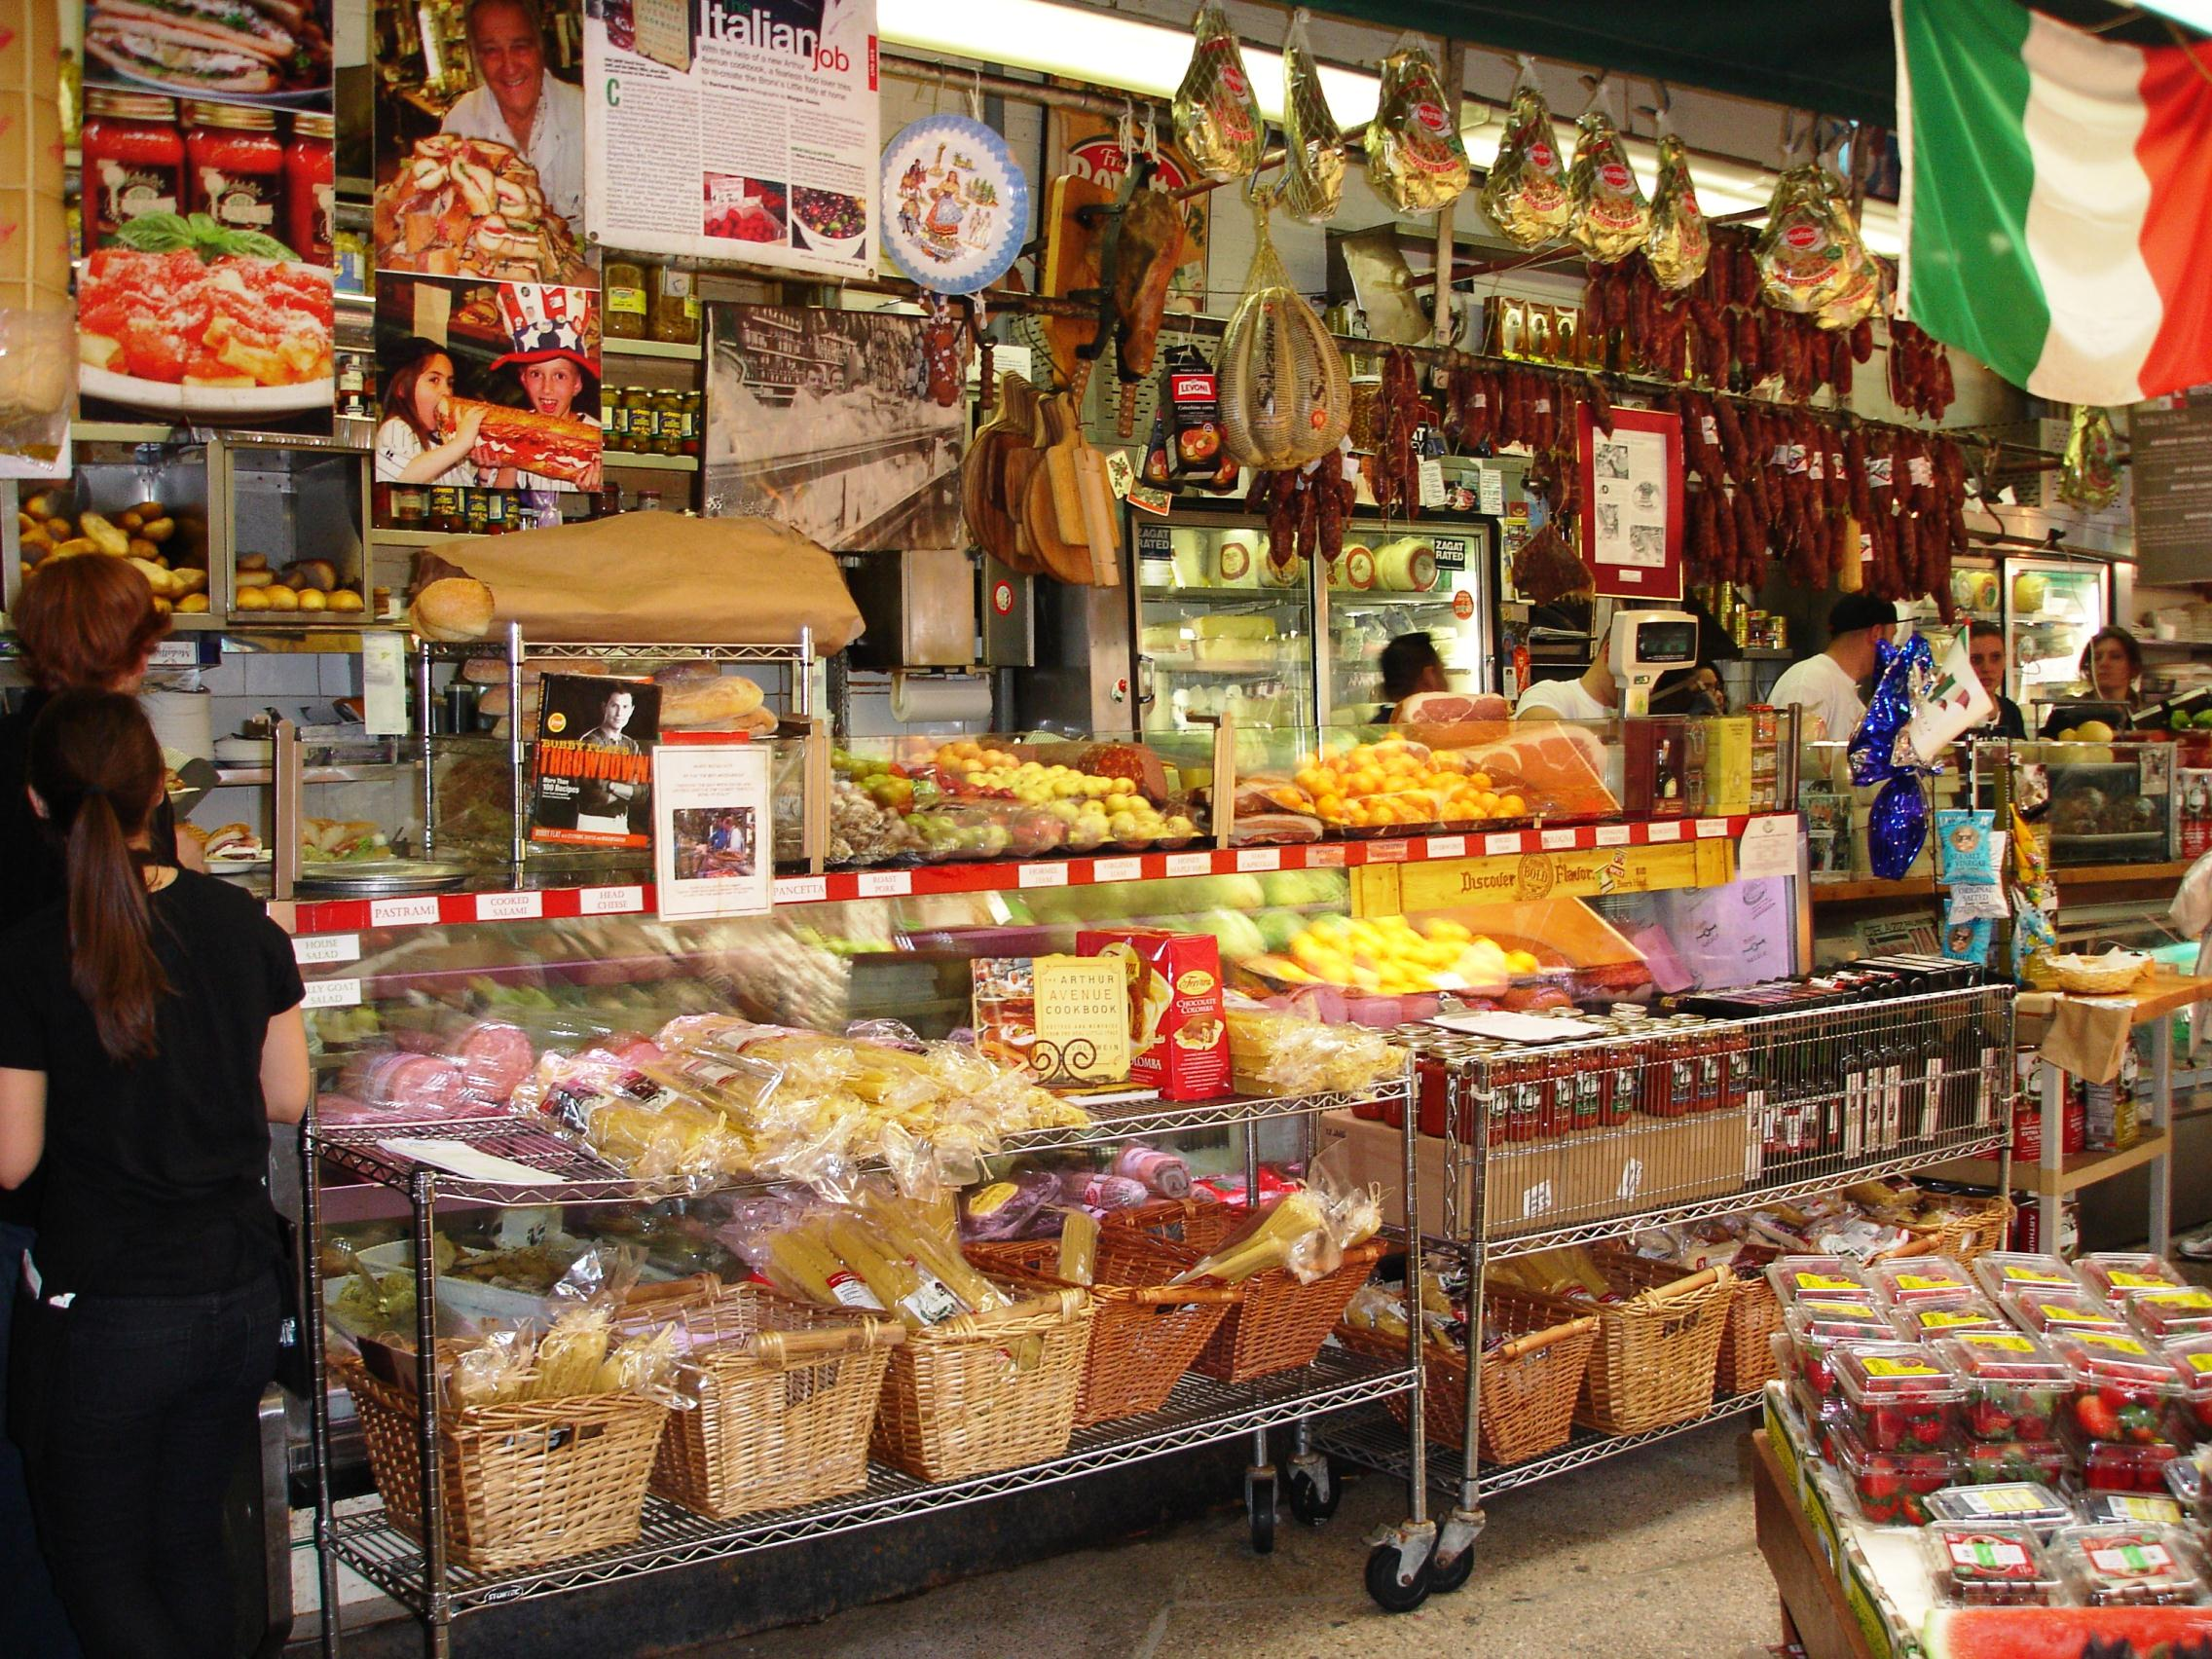 The Italian grocery of our dreams